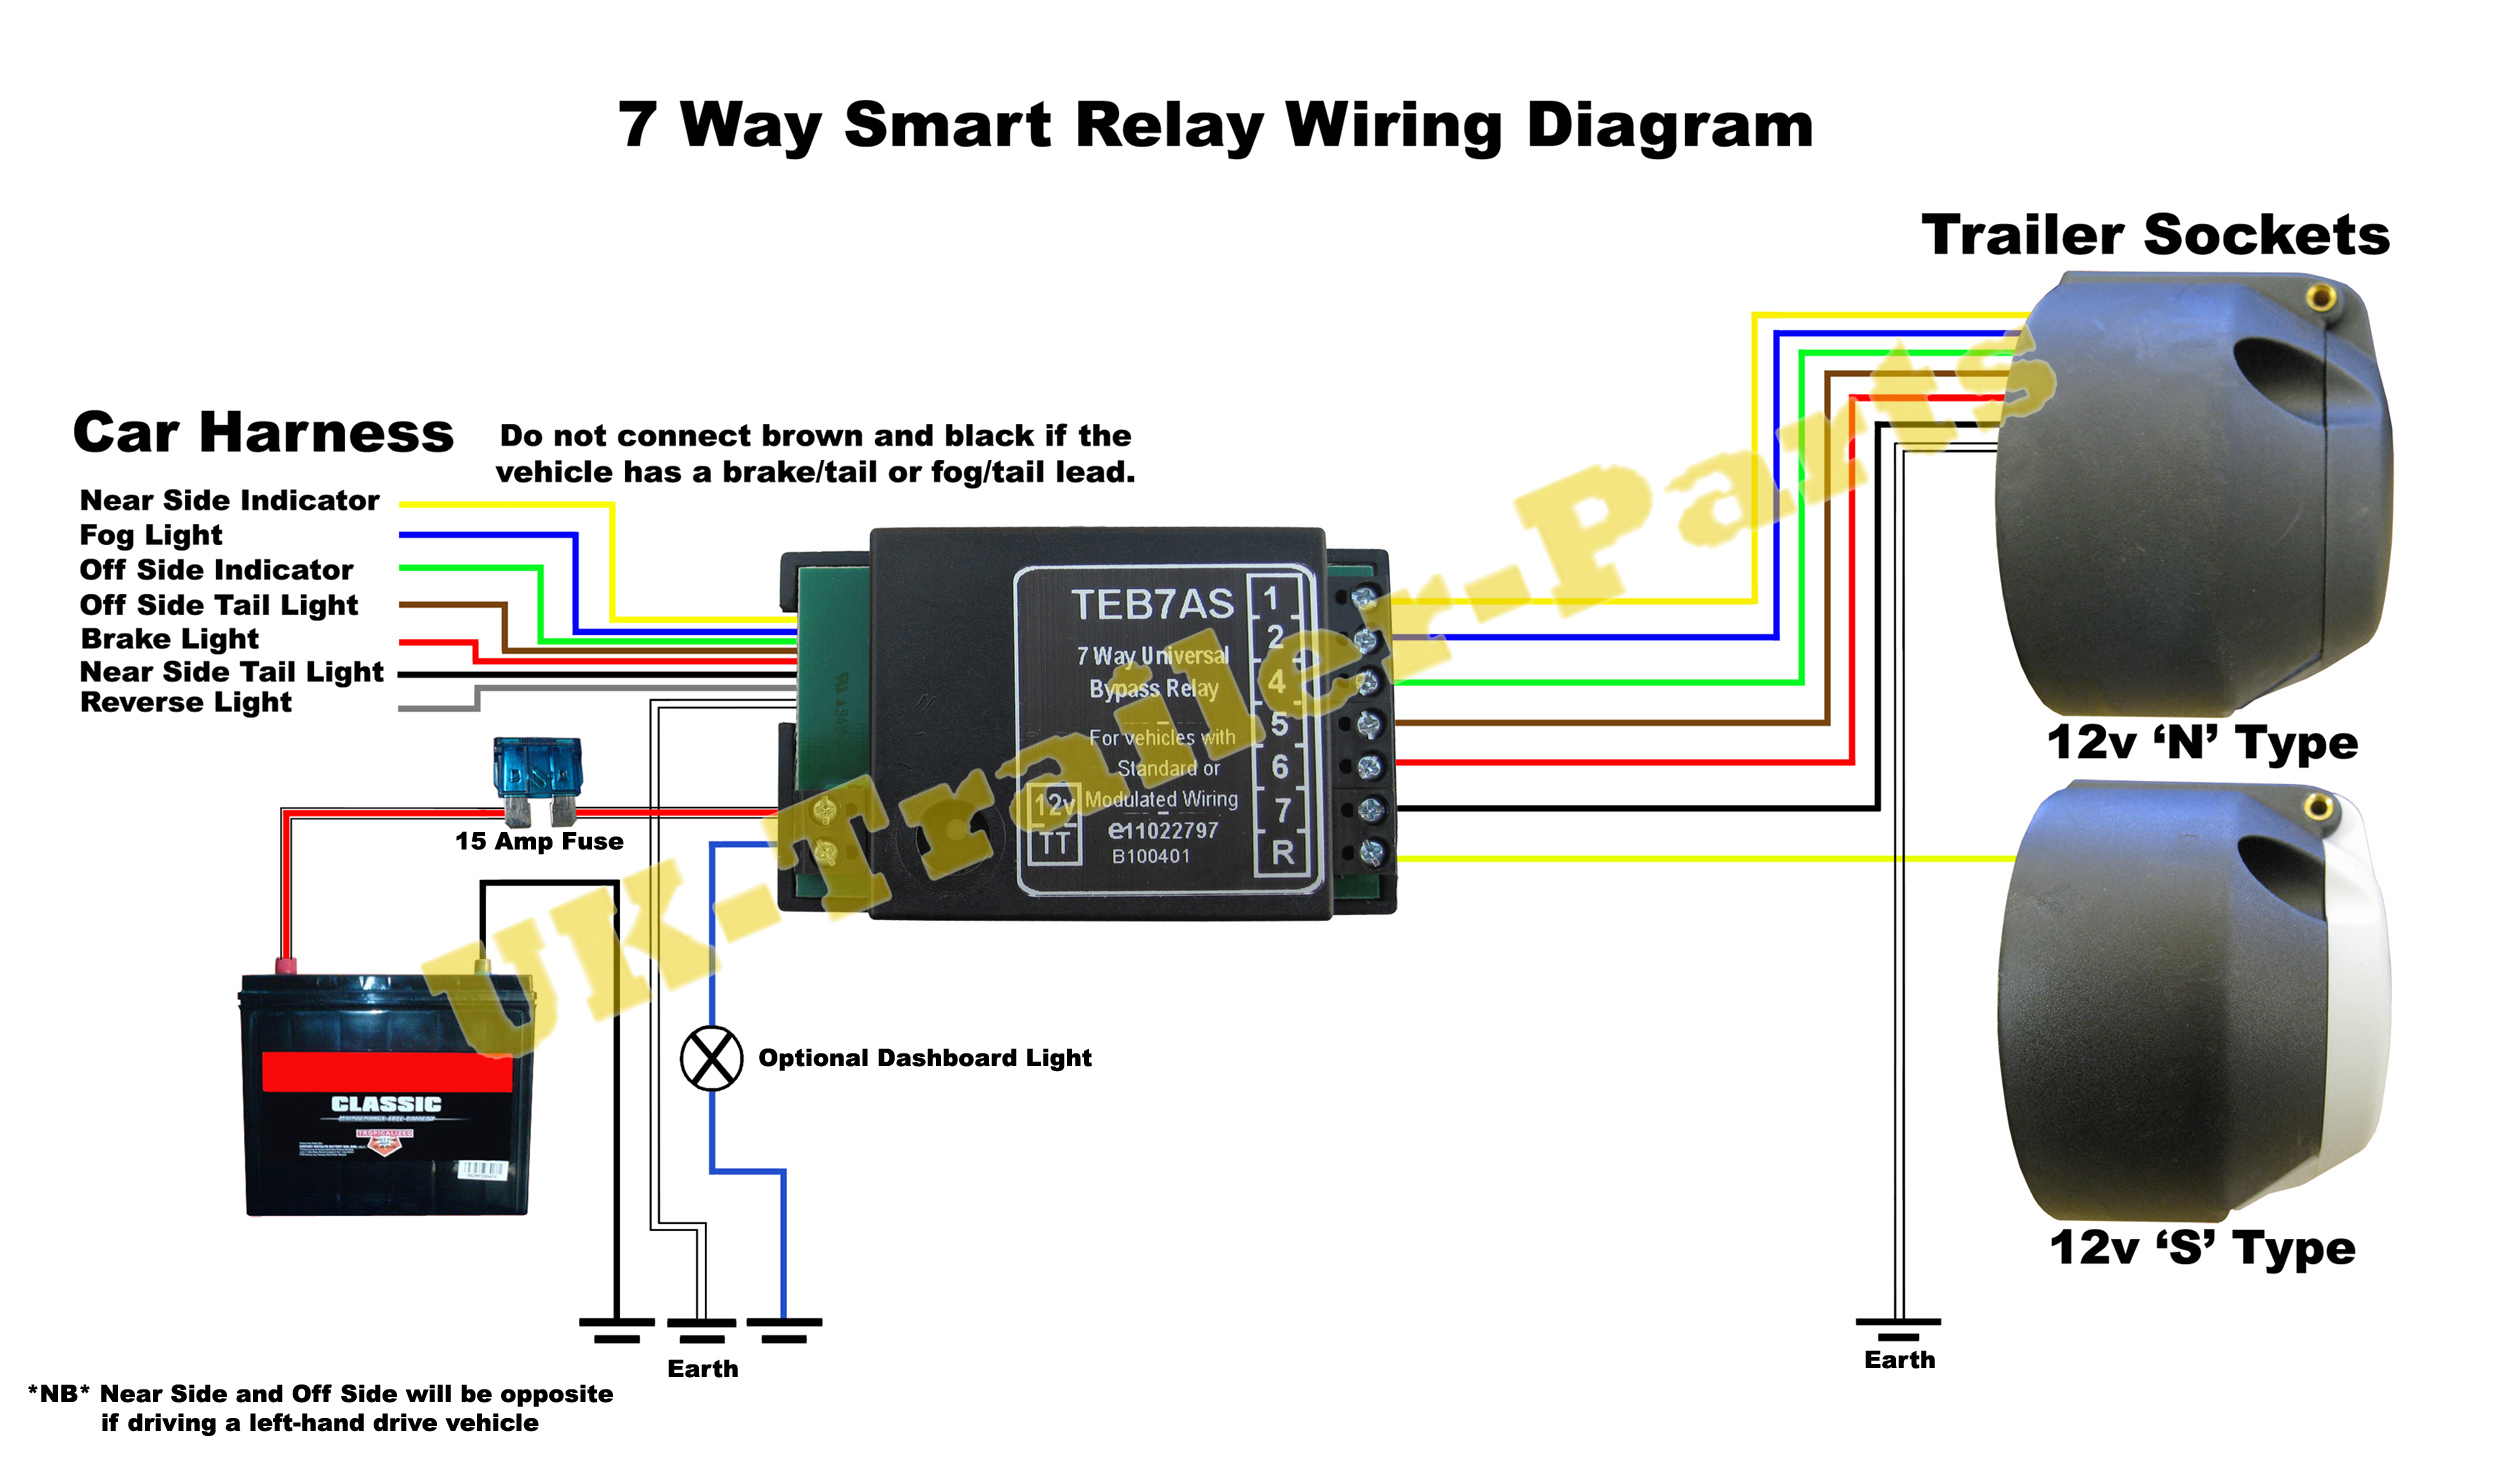 smart relay wiring diagram2 7 way universal bypass relay wiring diagram uk trailer parts vauxhall vectra towbar wiring diagram at virtualis.co